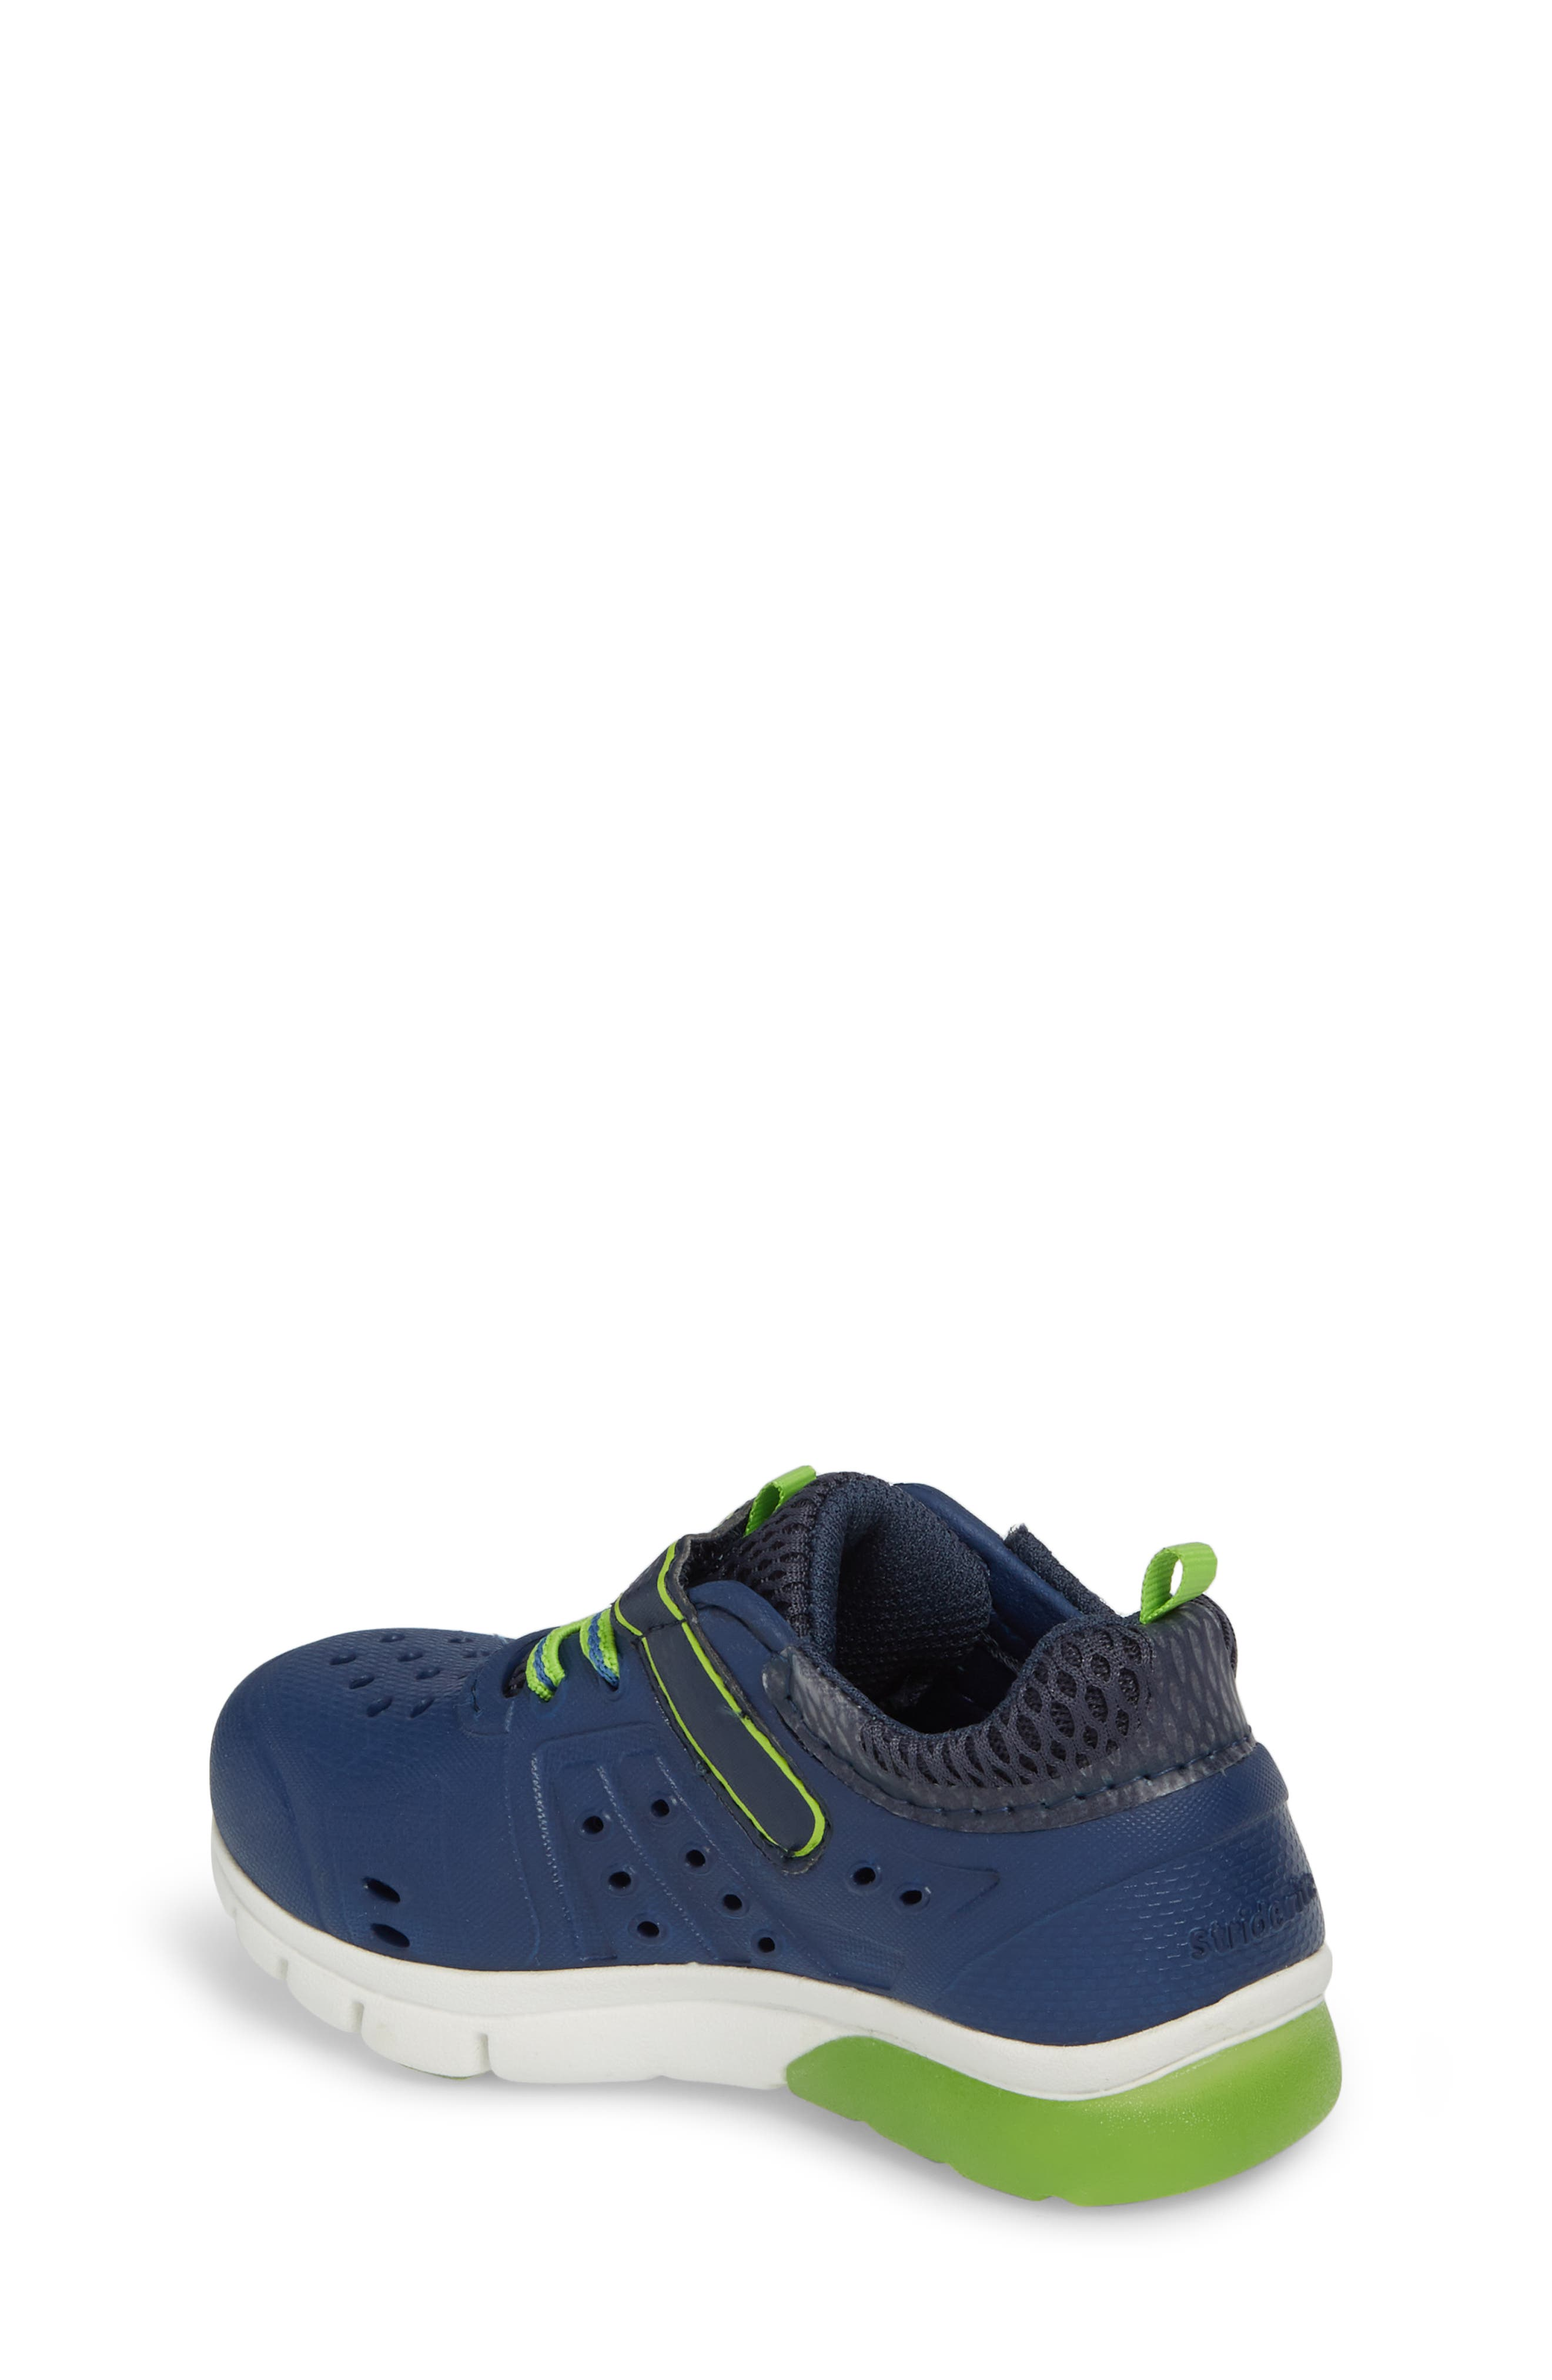 STRIDE RITE, Made2Play<sup>®</sup> Phibian Light-Up Sneaker, Alternate thumbnail 2, color, NAVY